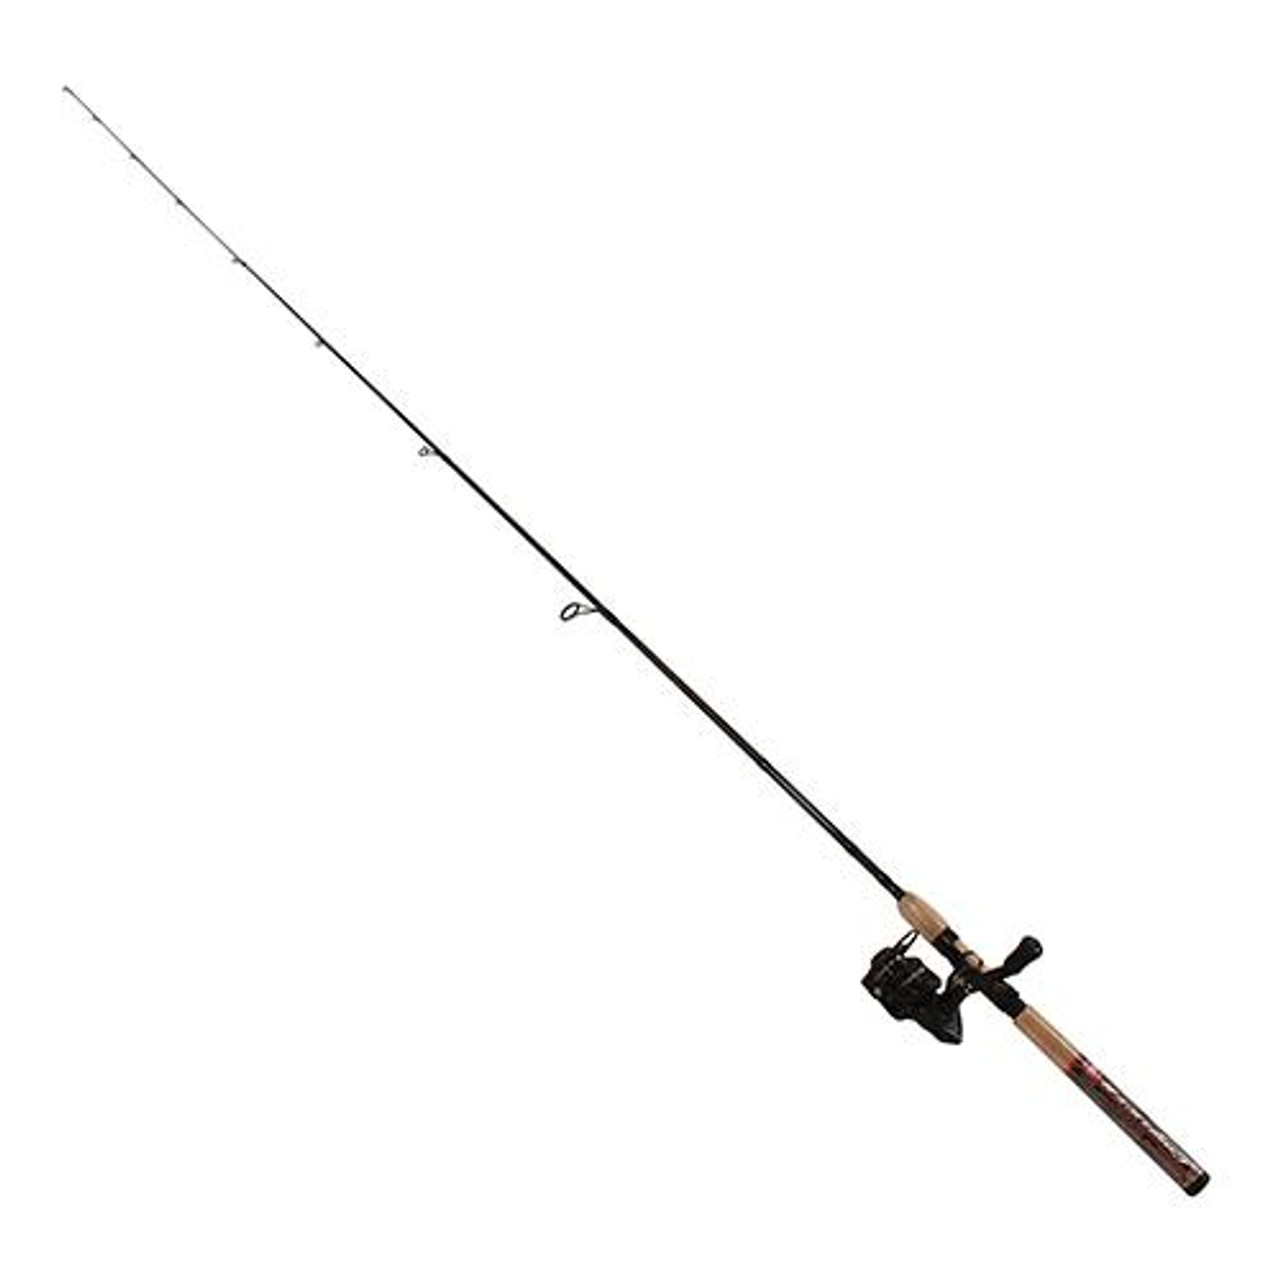 Penn Conflict II Spinning Combo 2500, 6 2:1 Gear Ratio, 7 Length, 1pc Rod,  4-10 lbs Line Rate, Ambidextrous